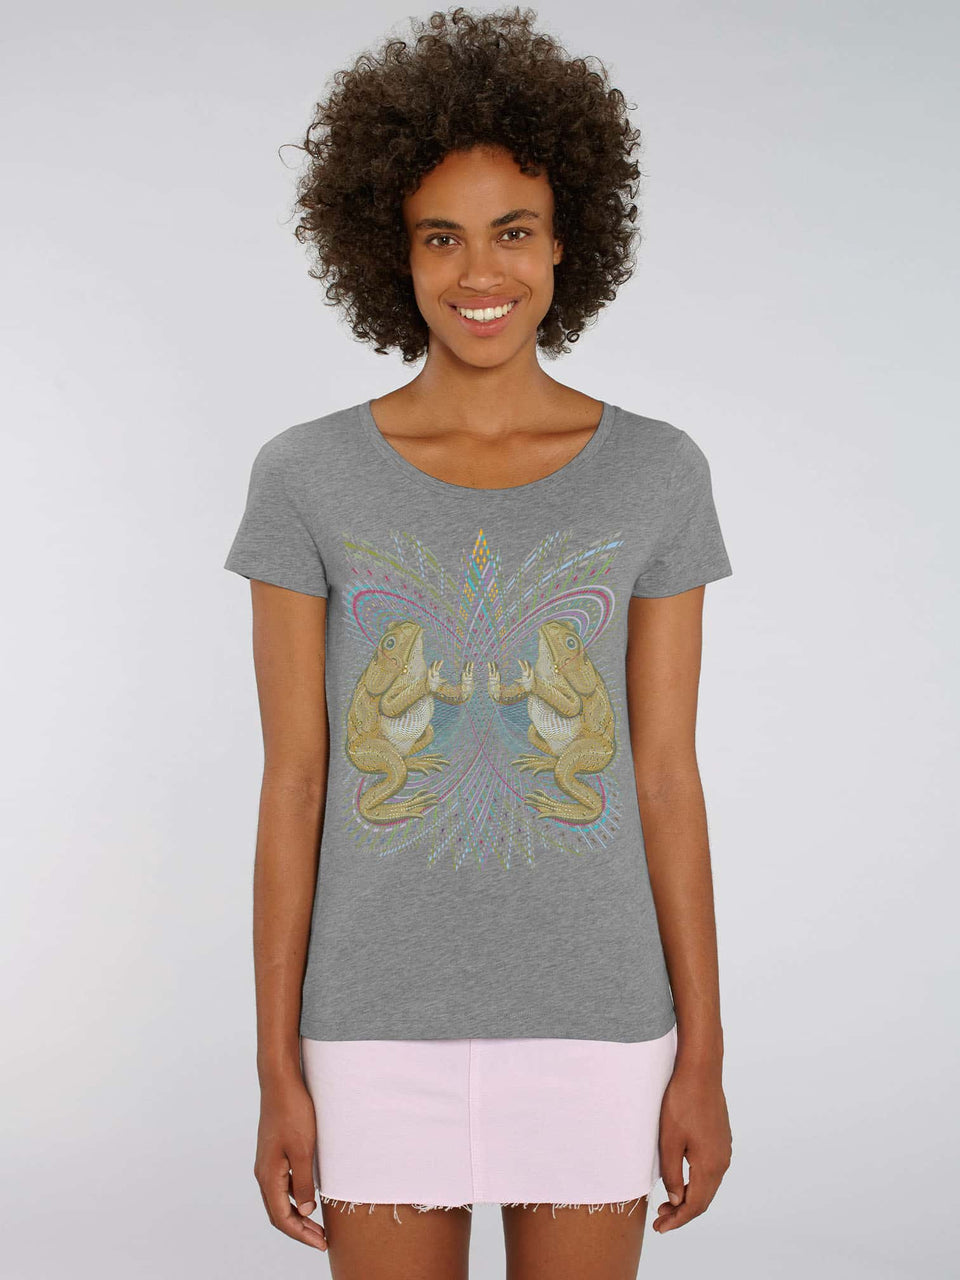 Bufo Alvarius Made To Order Women t-shirt - Mid Heather Grey